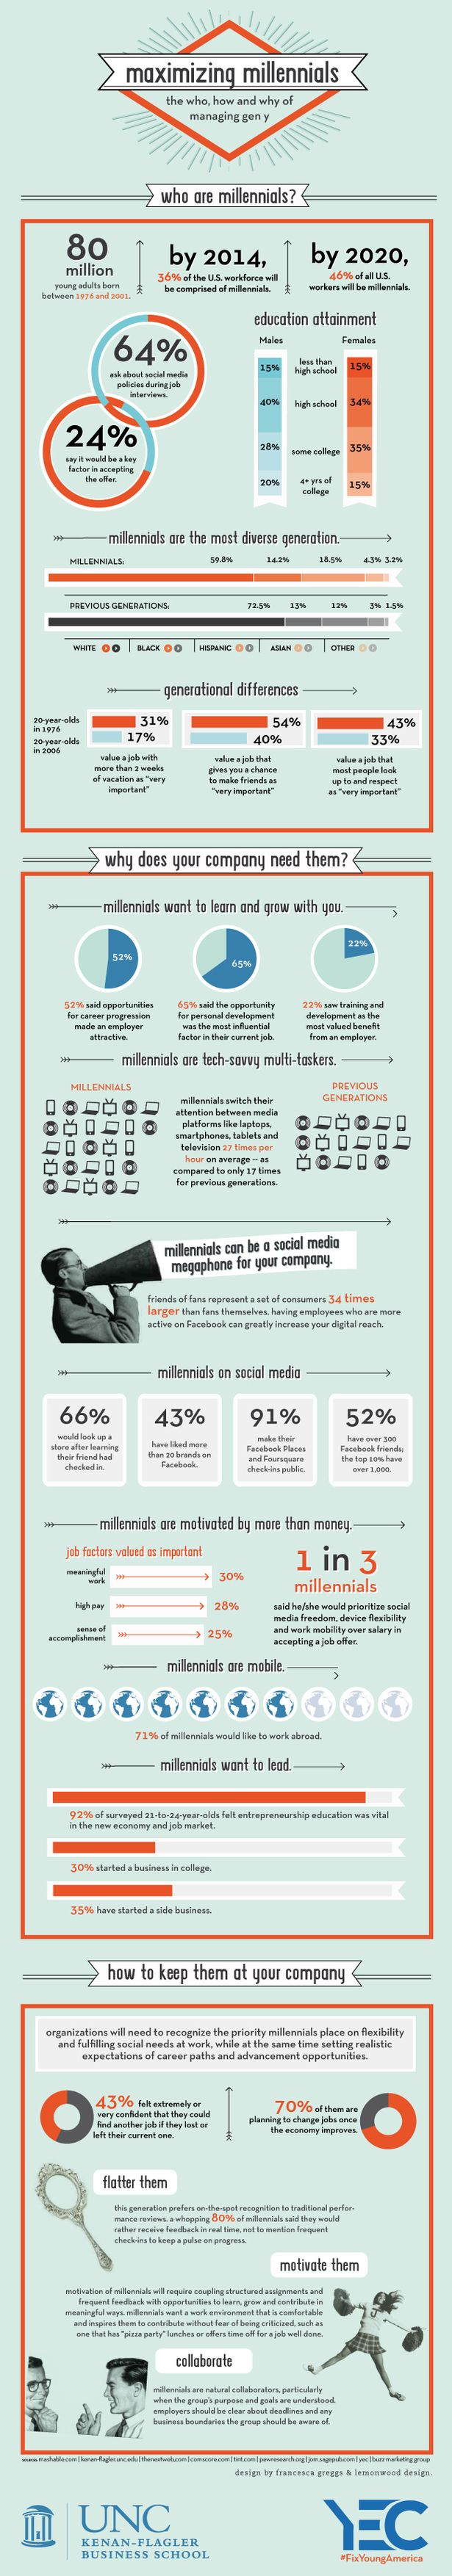 Maximizing the impact of Generation Y in the workforce: Infographic | Econsultancy